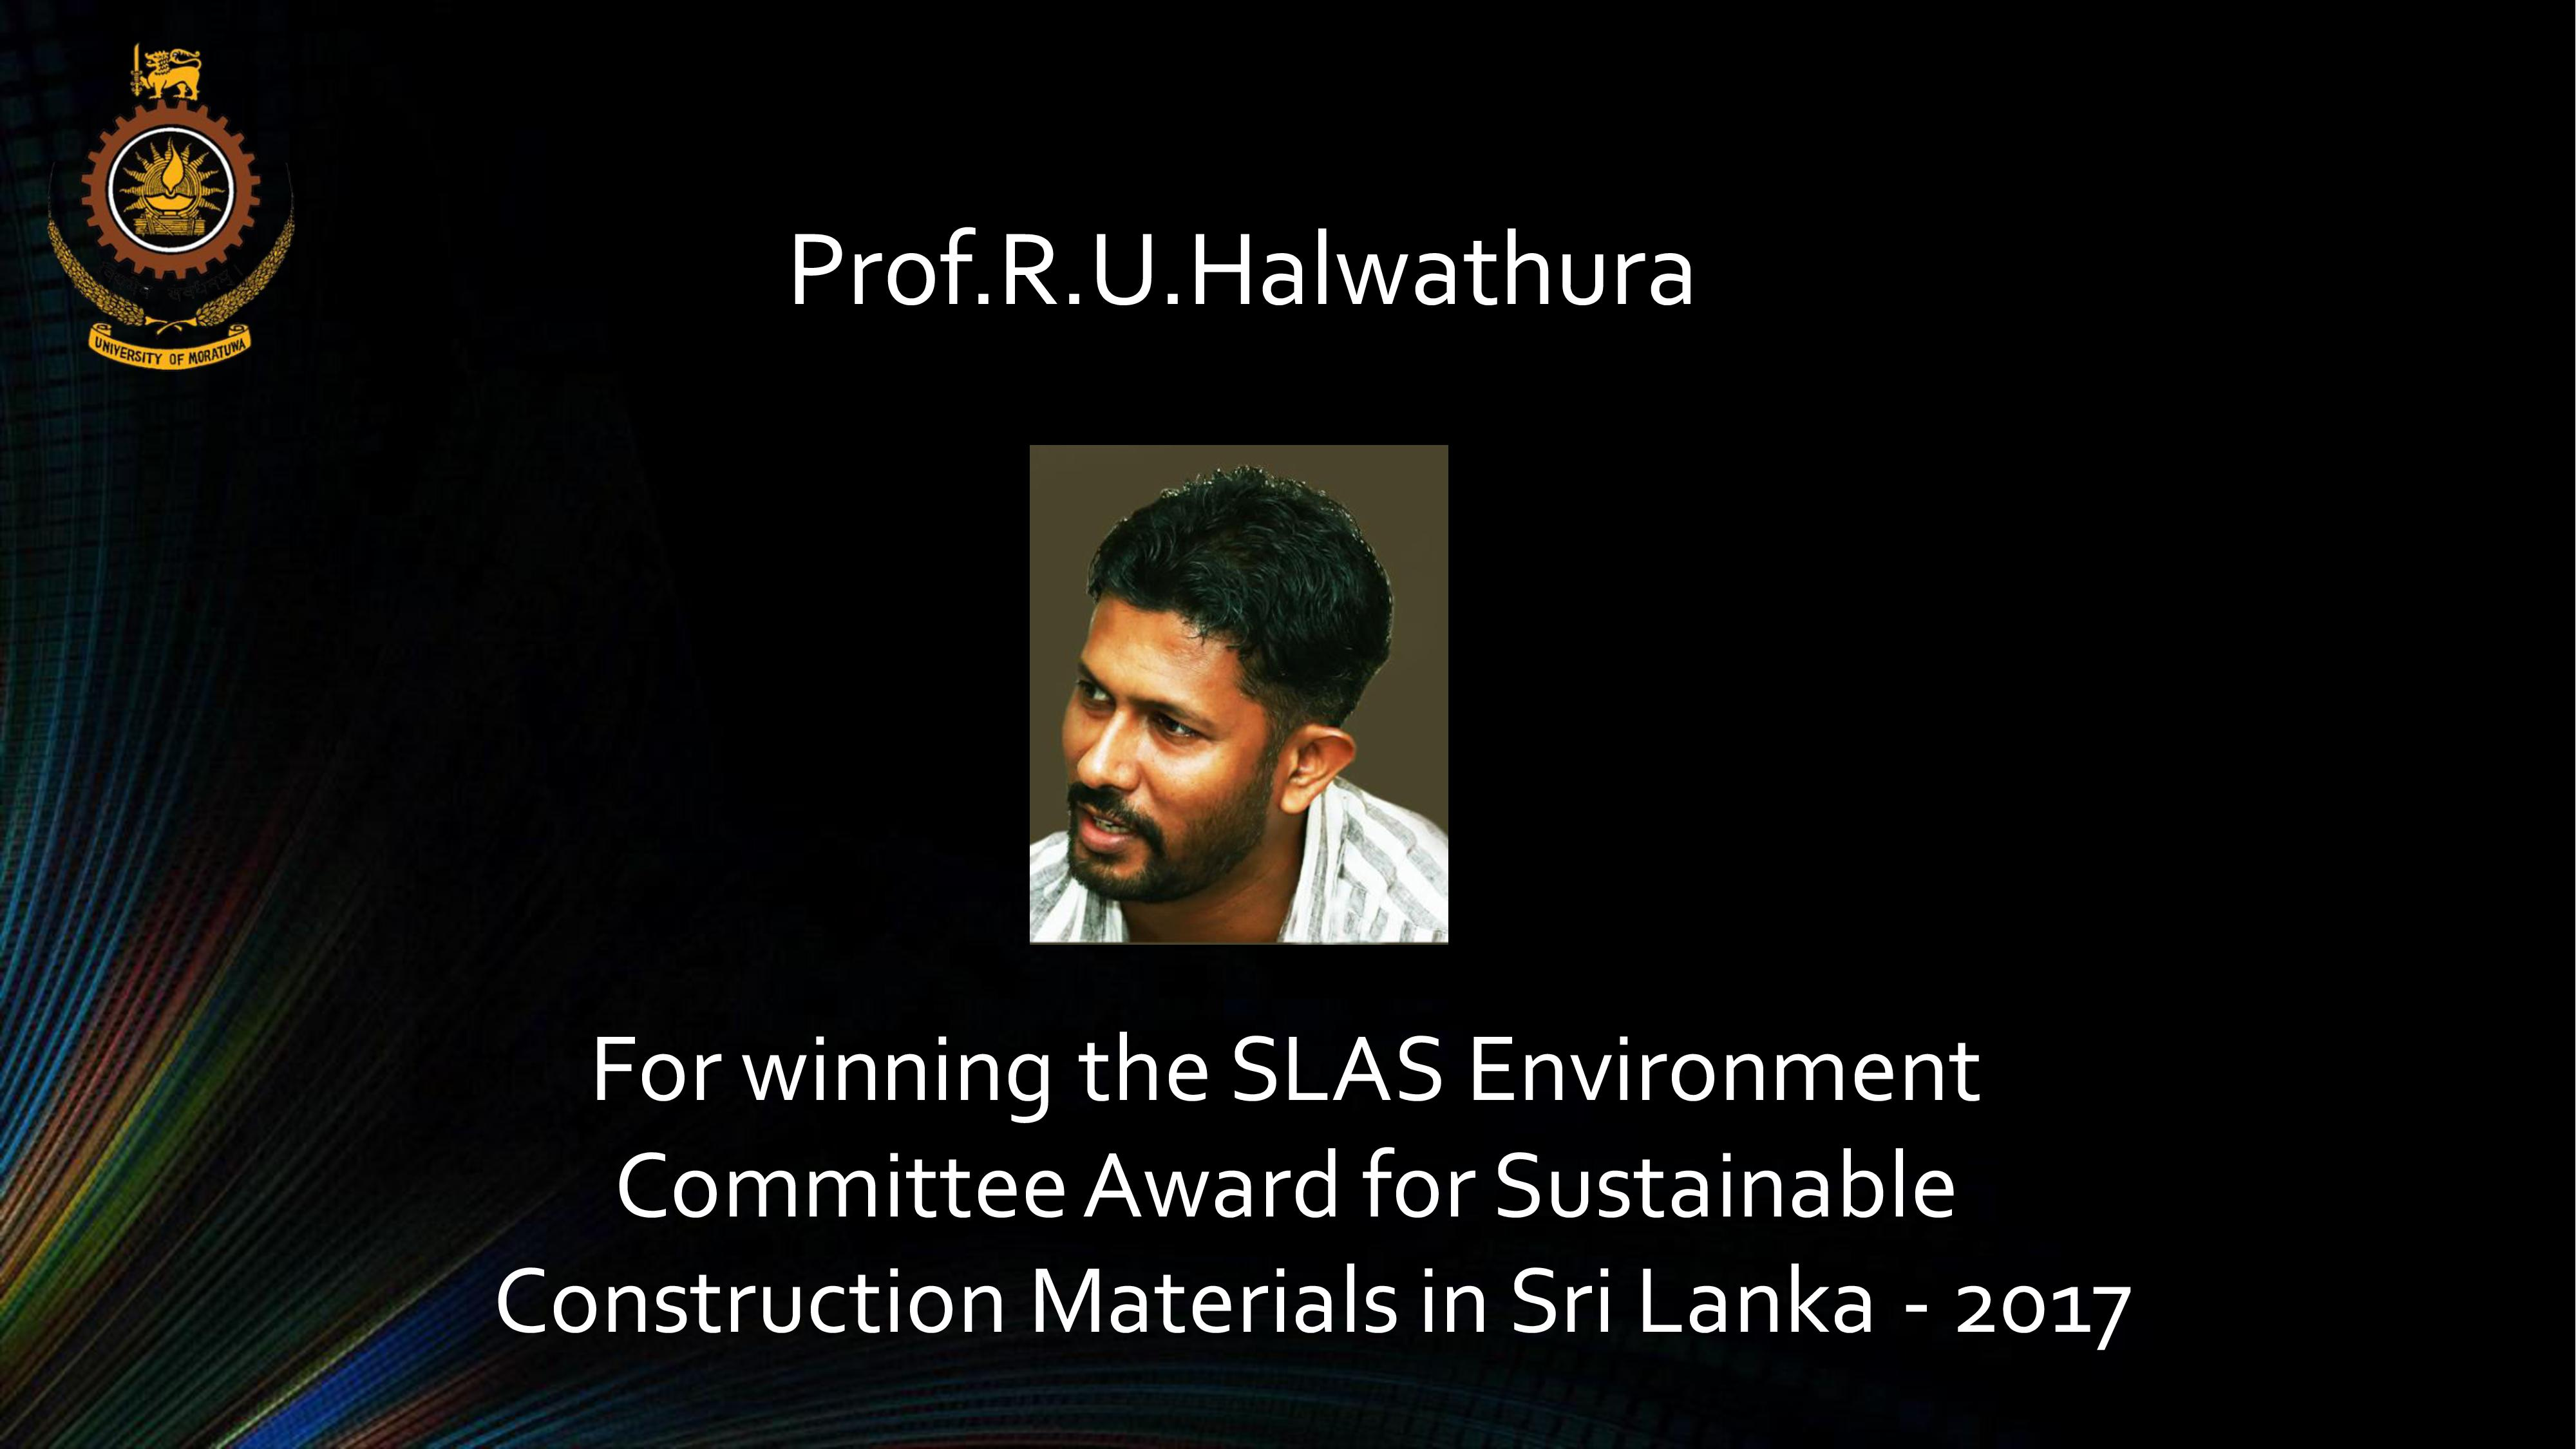 Winning the SLAS Environment Committee Award for Sustainable Construction Materials in Sri Lanka